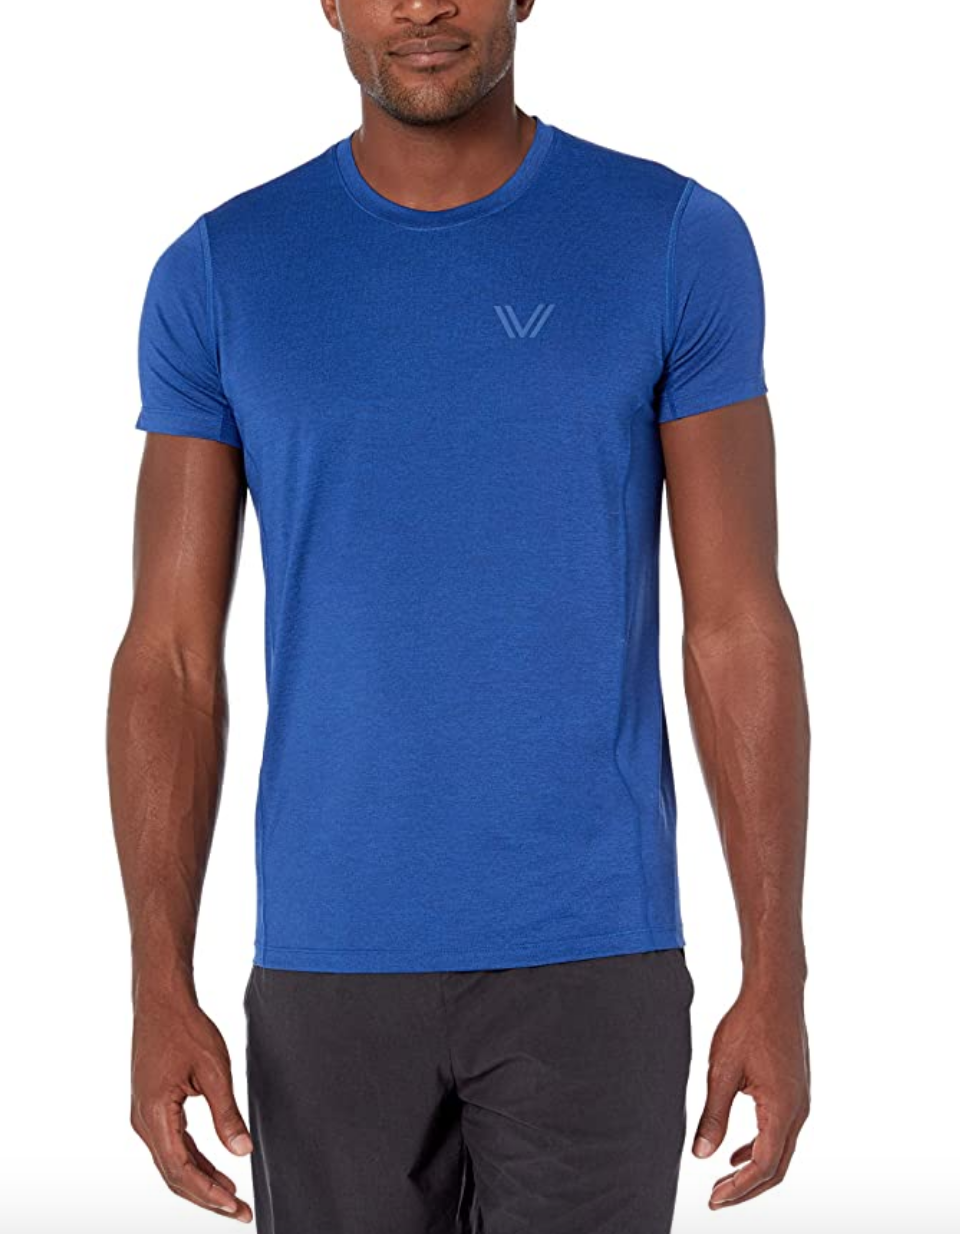 workout t-shirt mens